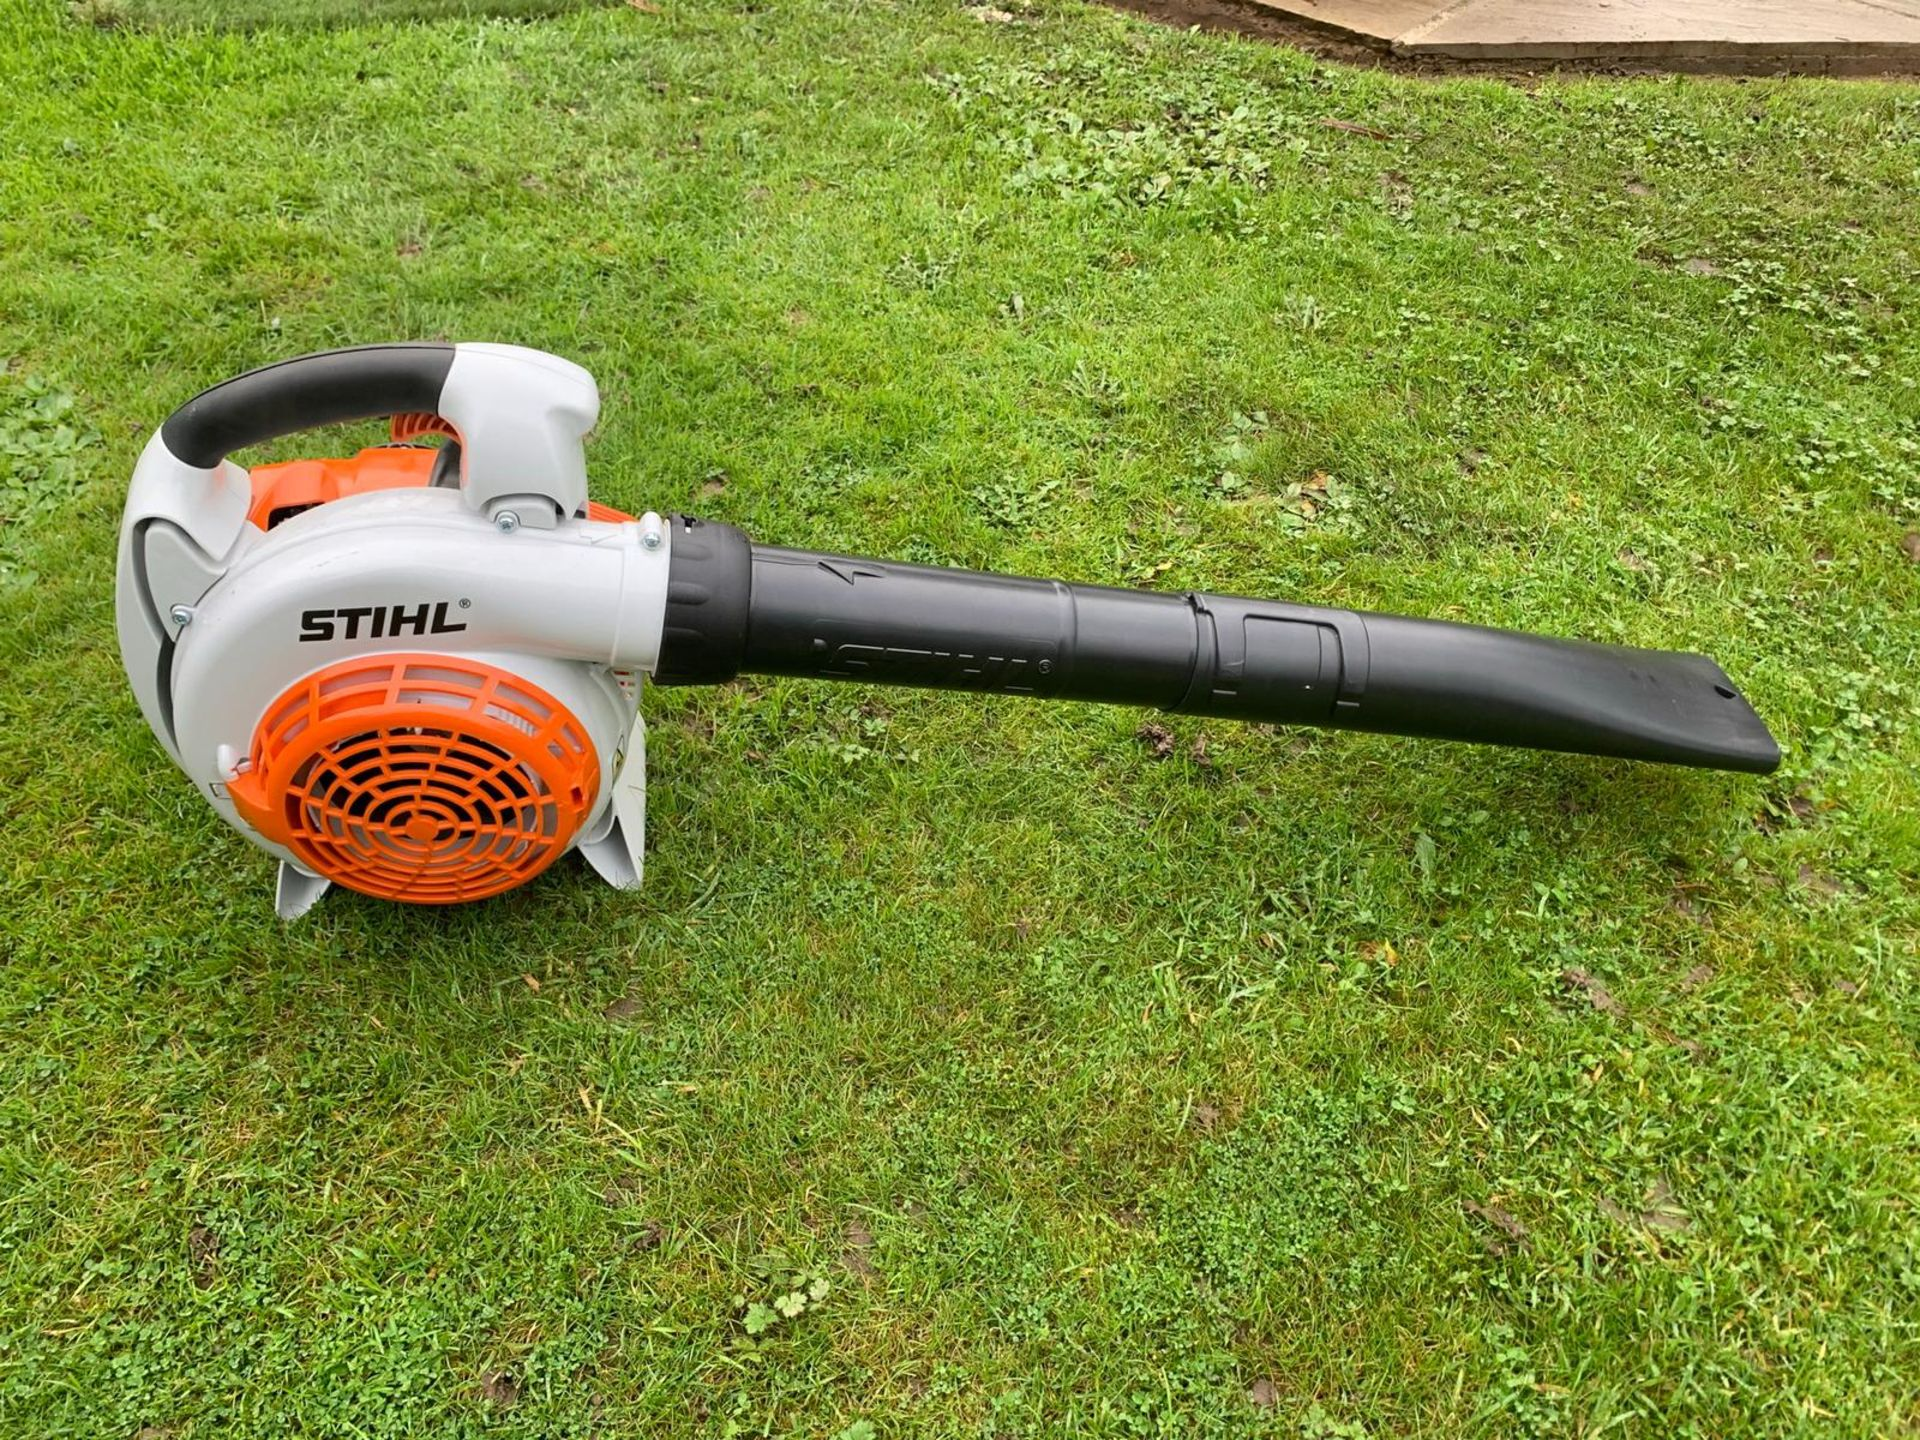 BRAND NEW AND UNUSED STIHL BG86C-E LEAF BLOWER, C/W PIPES AND MANUAL *NO VAT* - Image 2 of 4